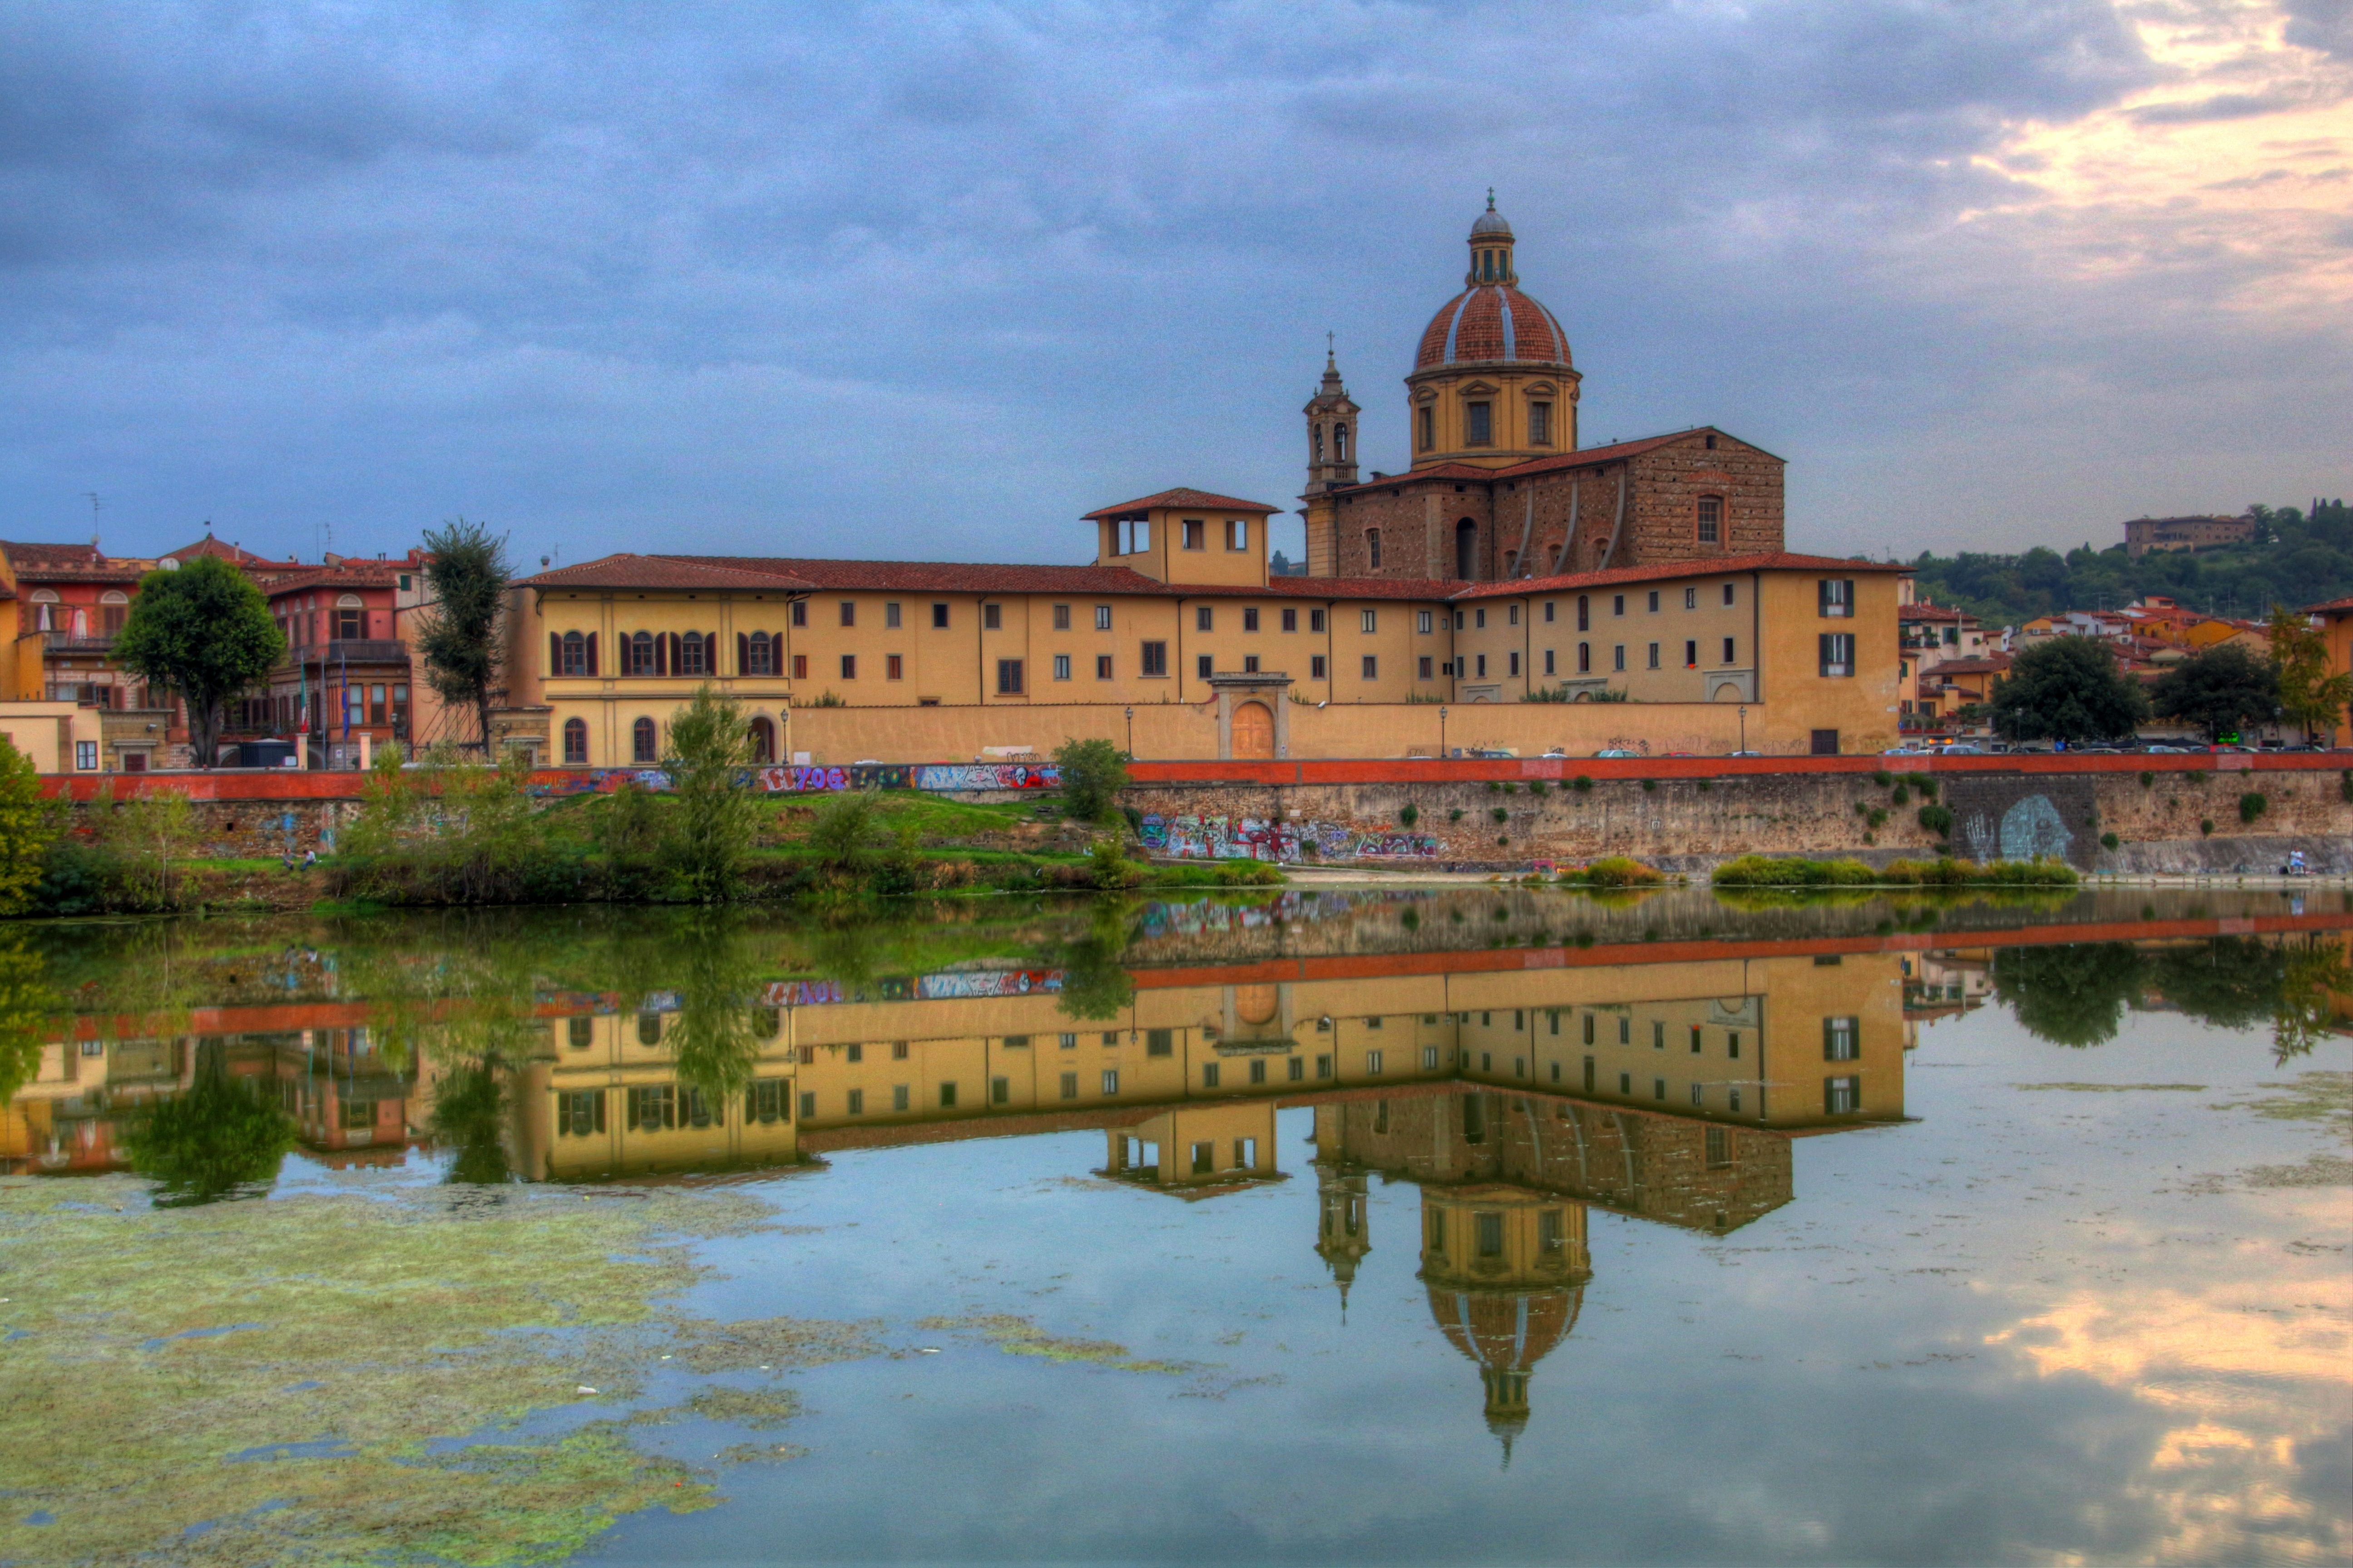 florence reflection with graffiti author lucke ch charlie